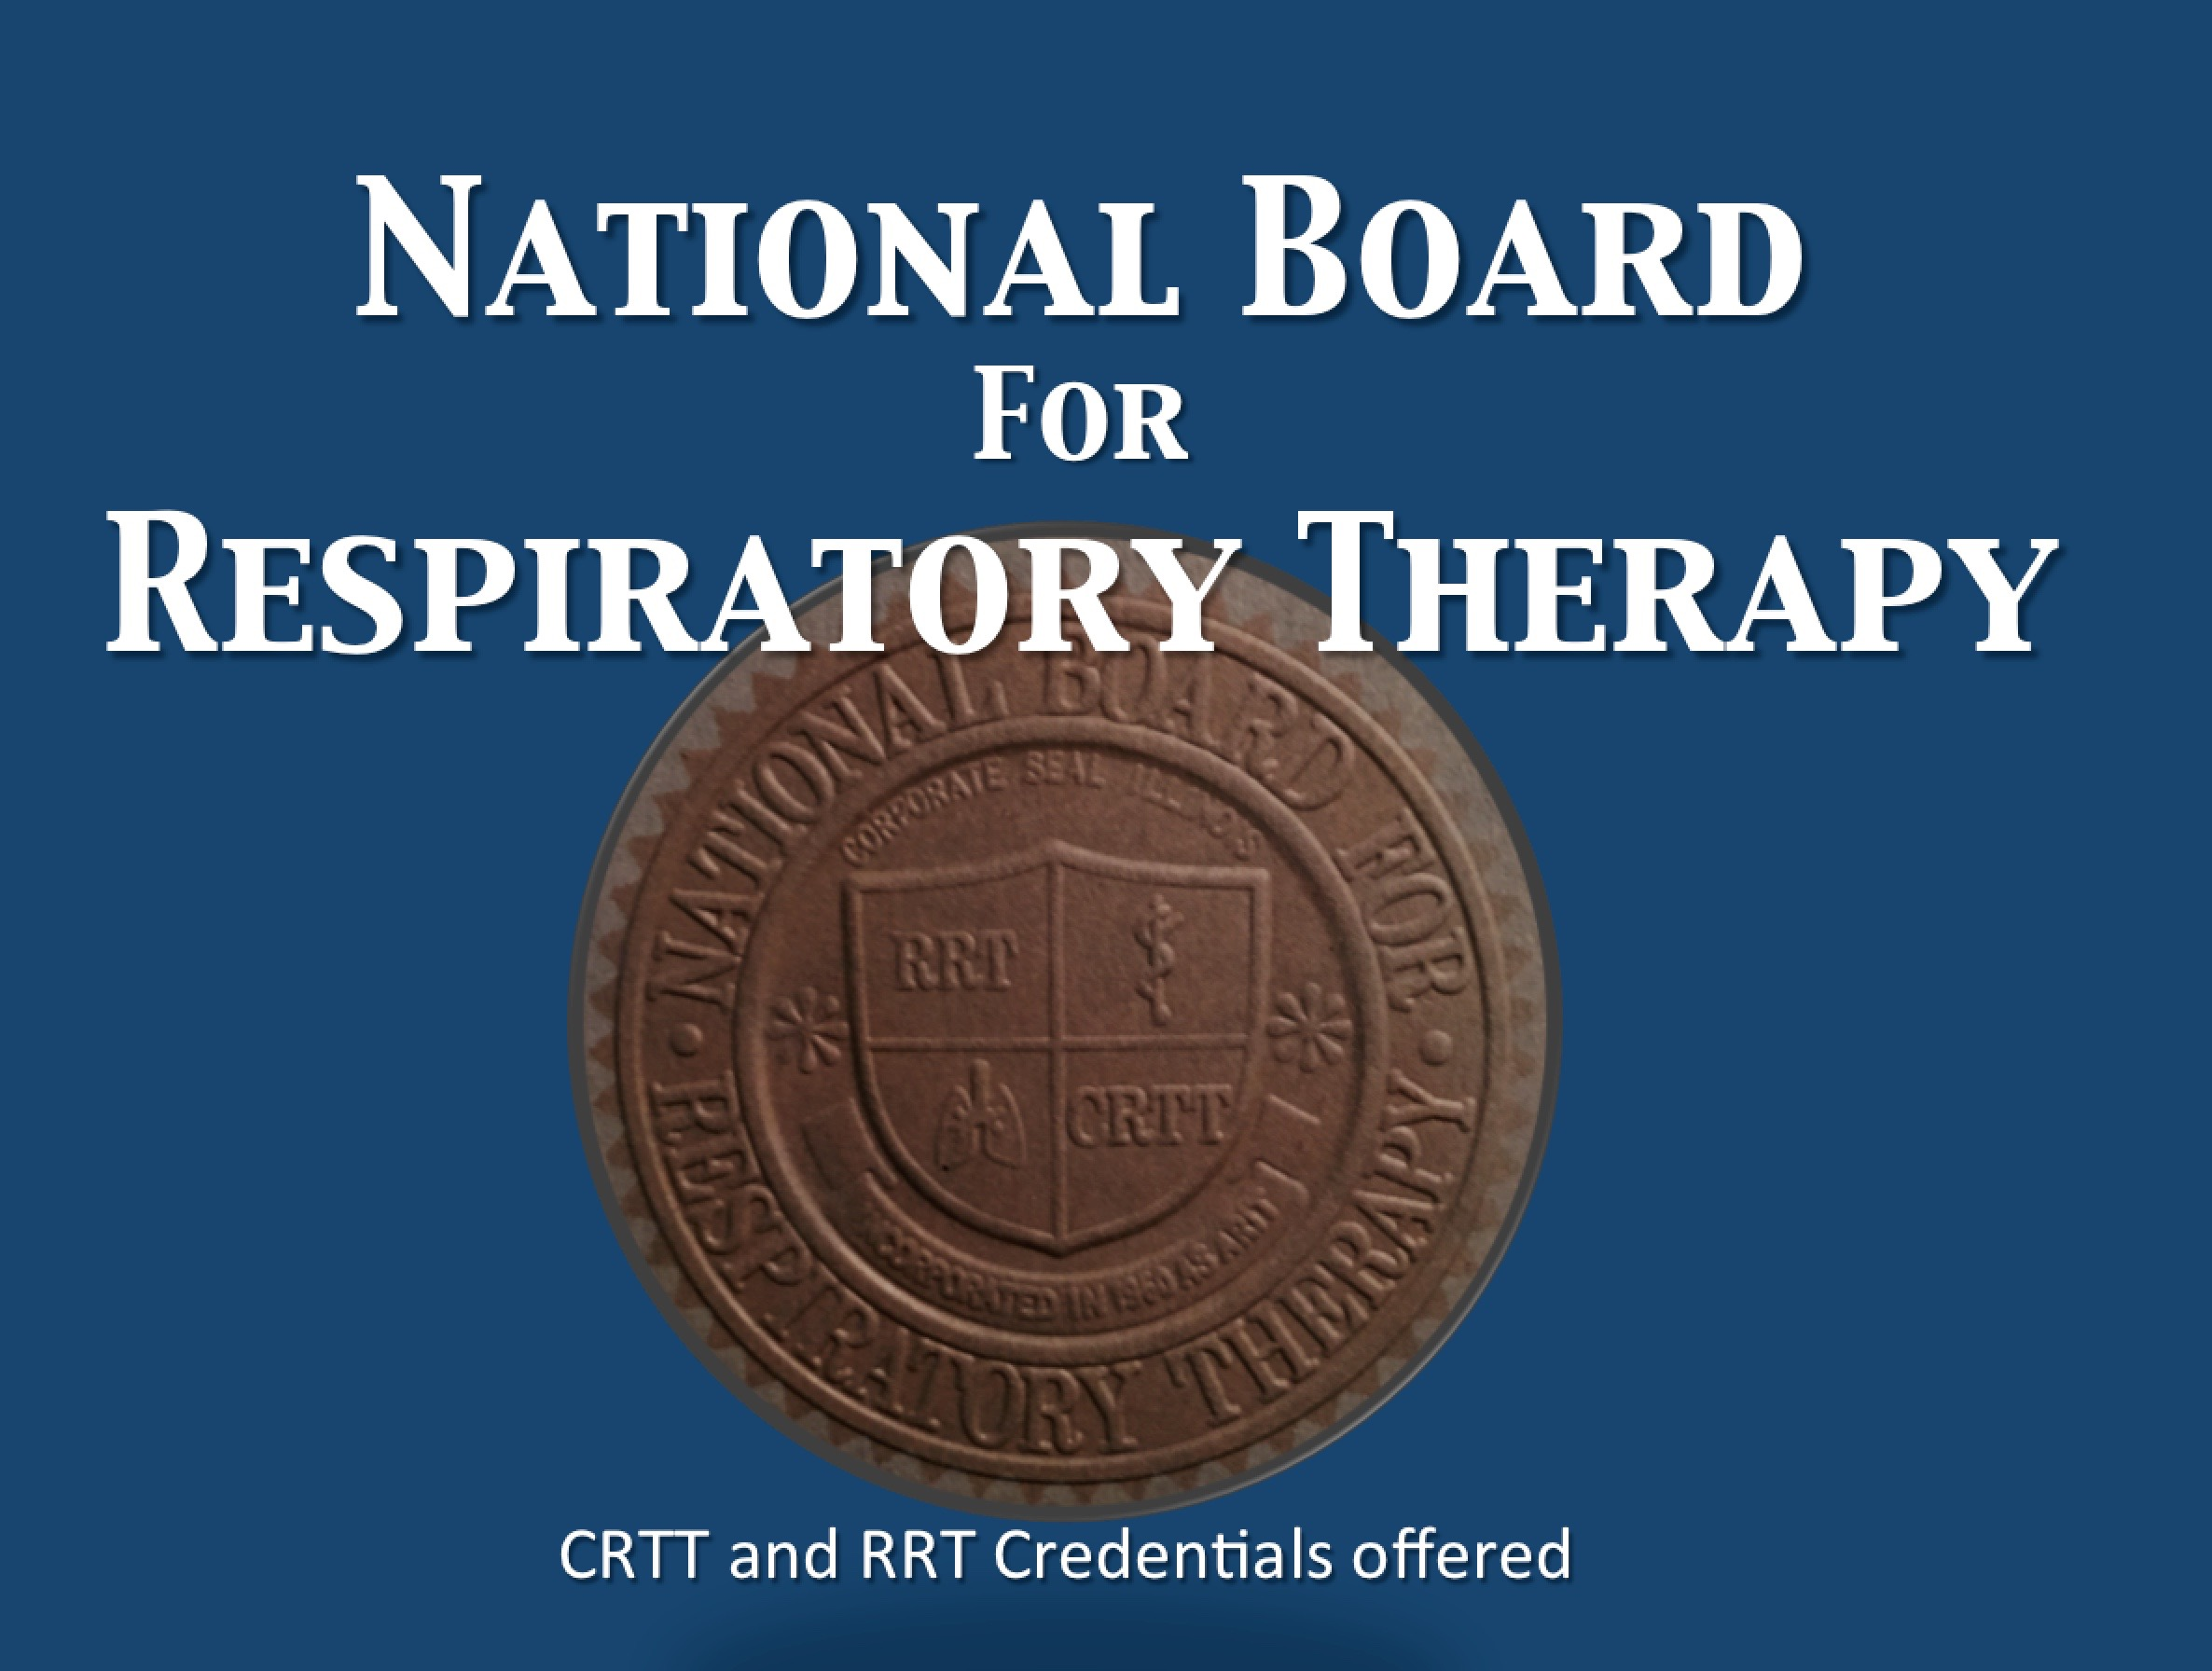 1974 –  Credentialing Transferred to NBRT